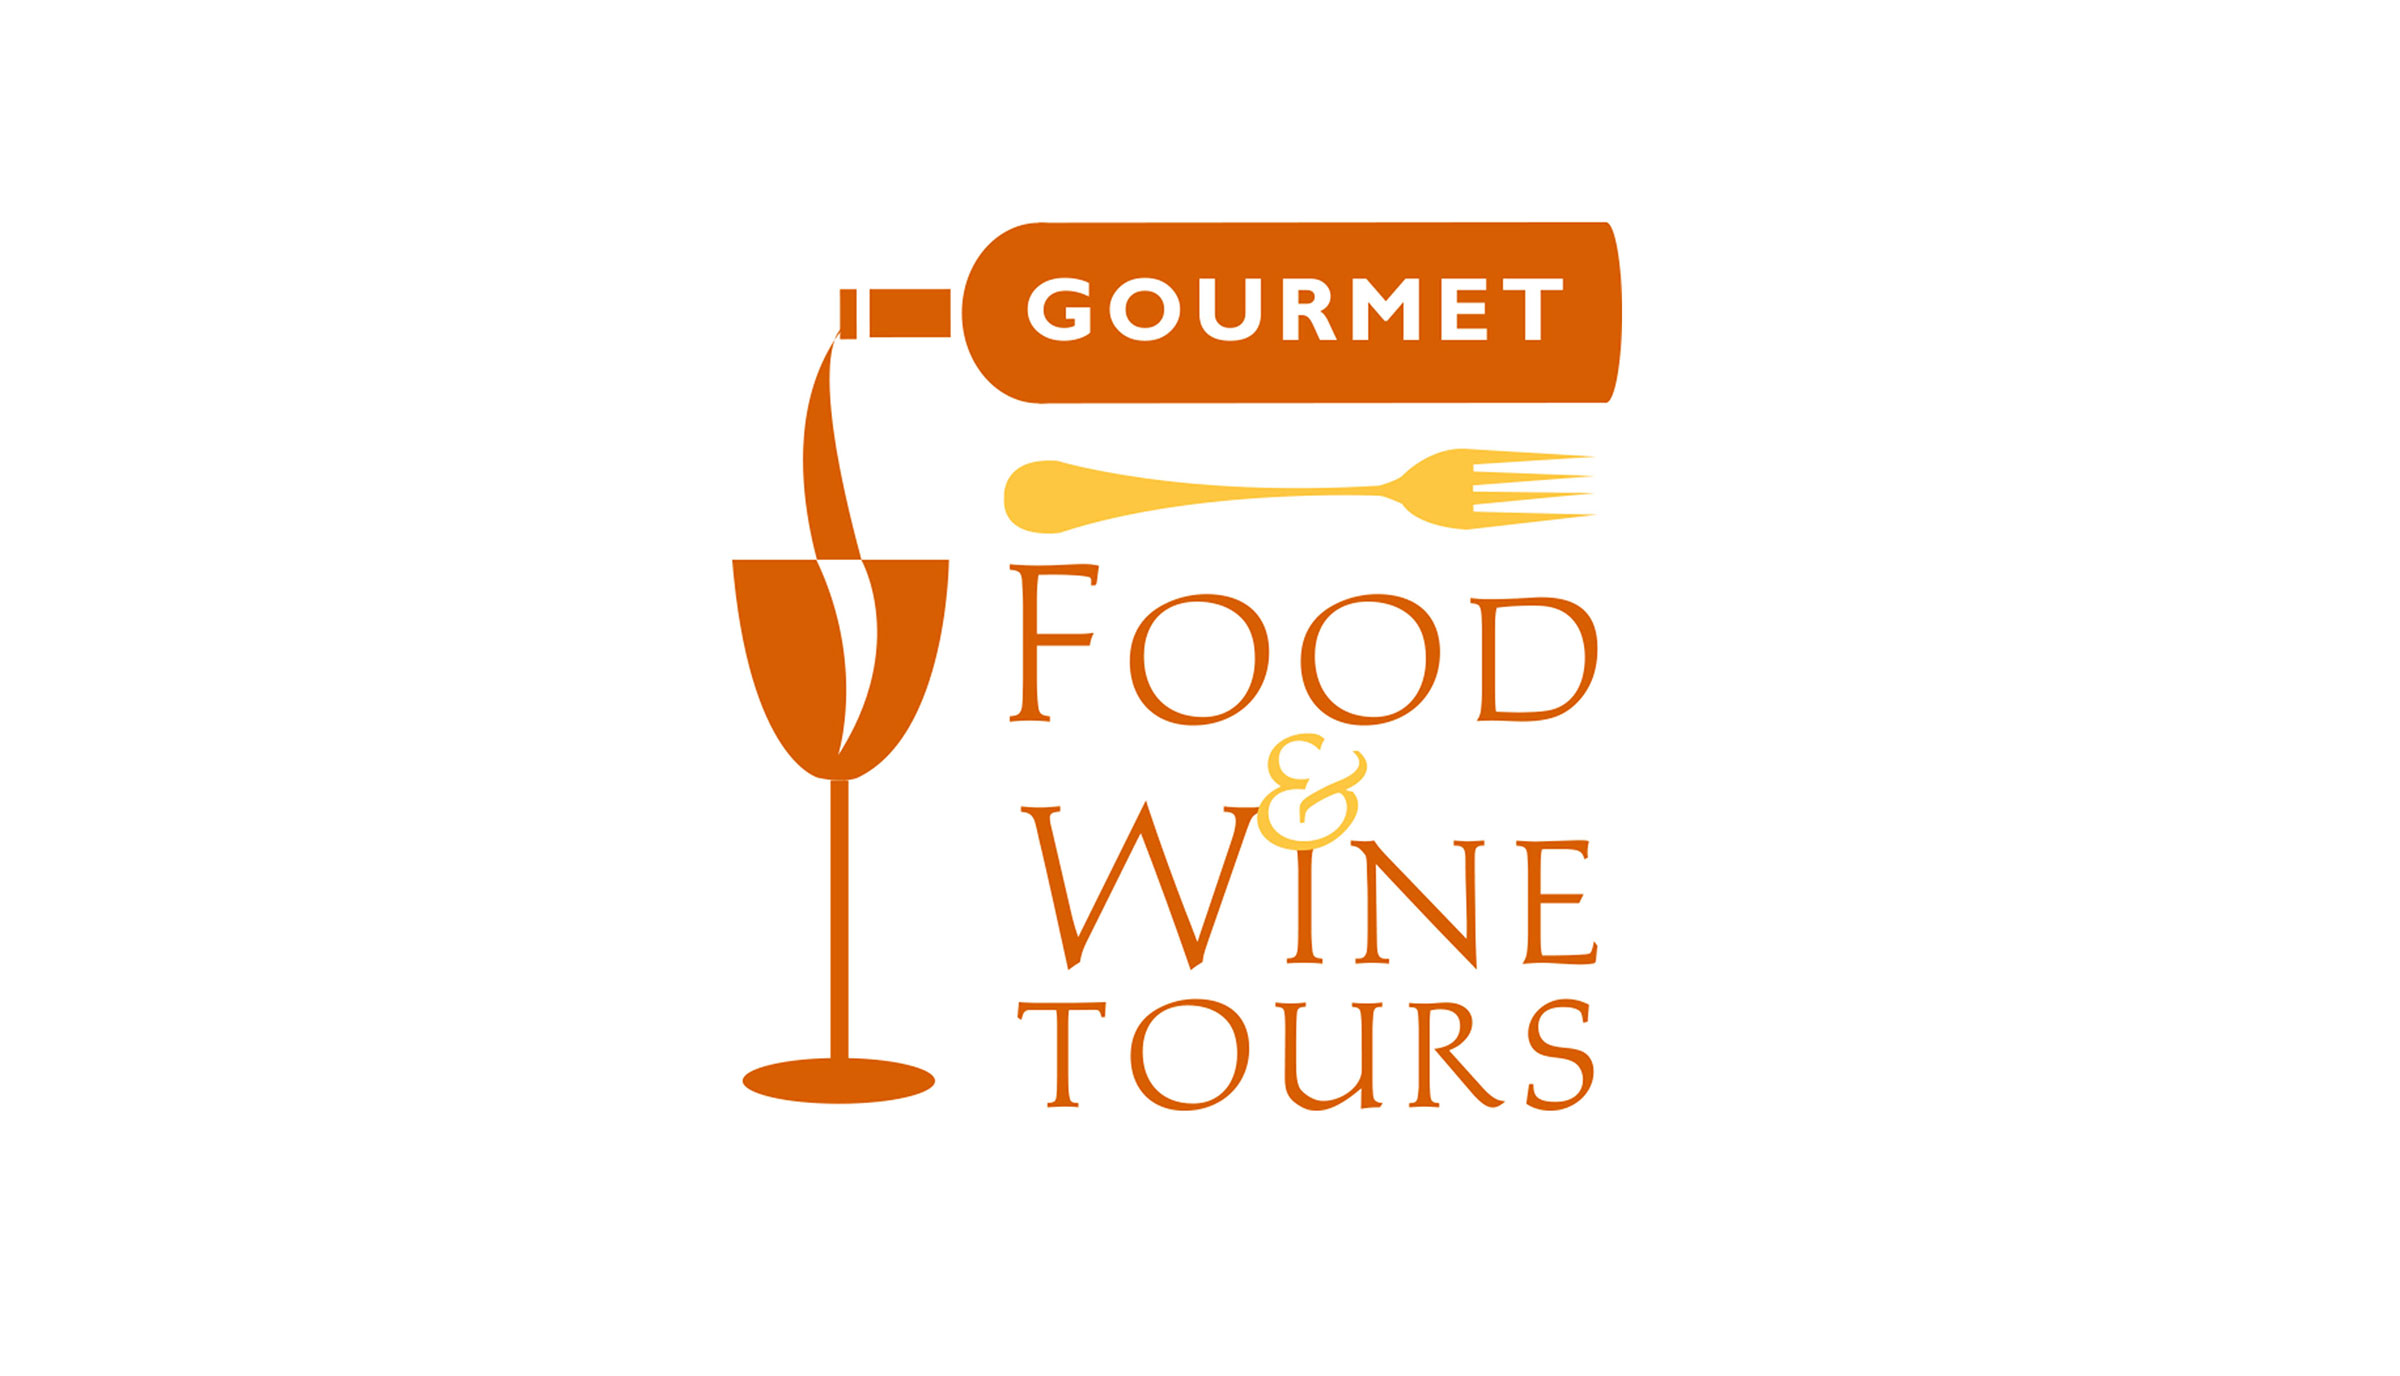 gourmet-food-wine-tours-logo